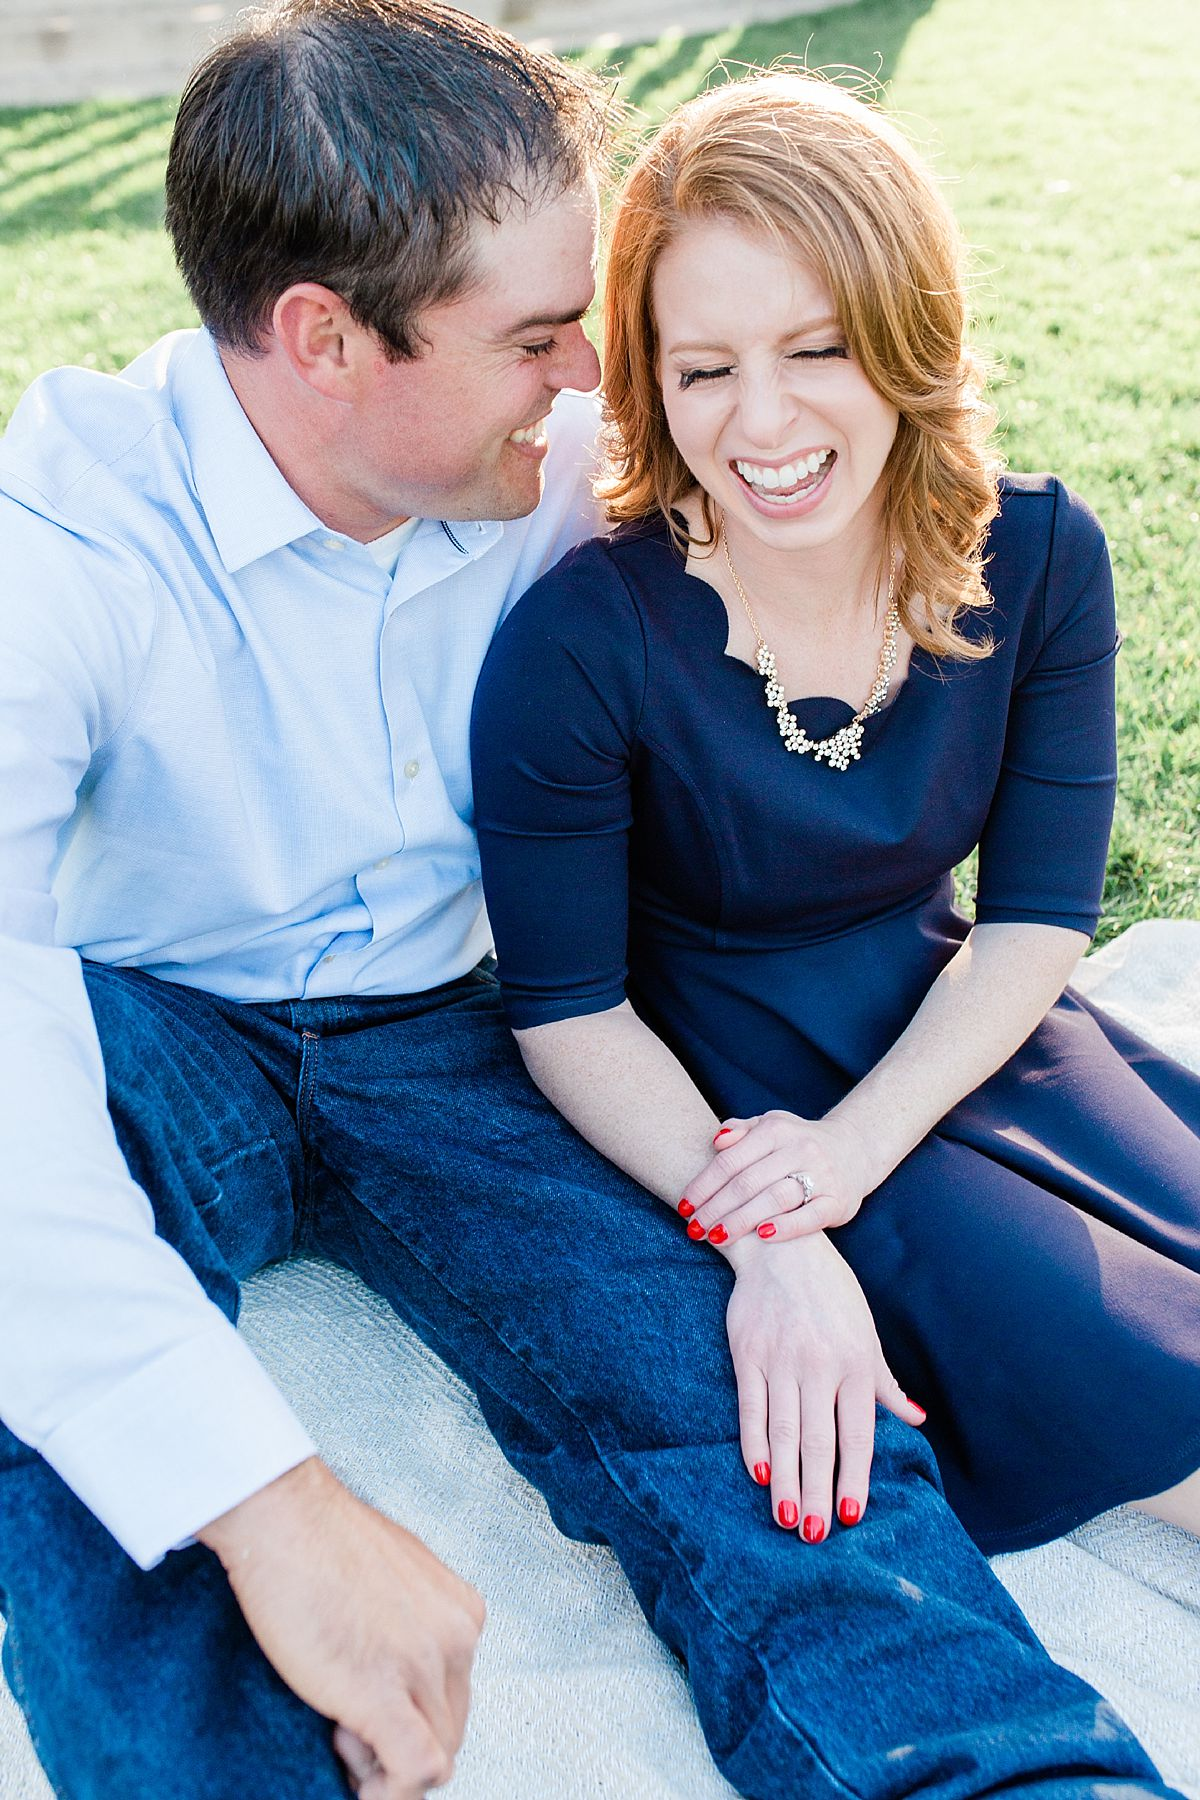 Viaggio Winery Engagement Session - Liz and TJ - Lodi Winery Wedding Photographer_0009.jpg